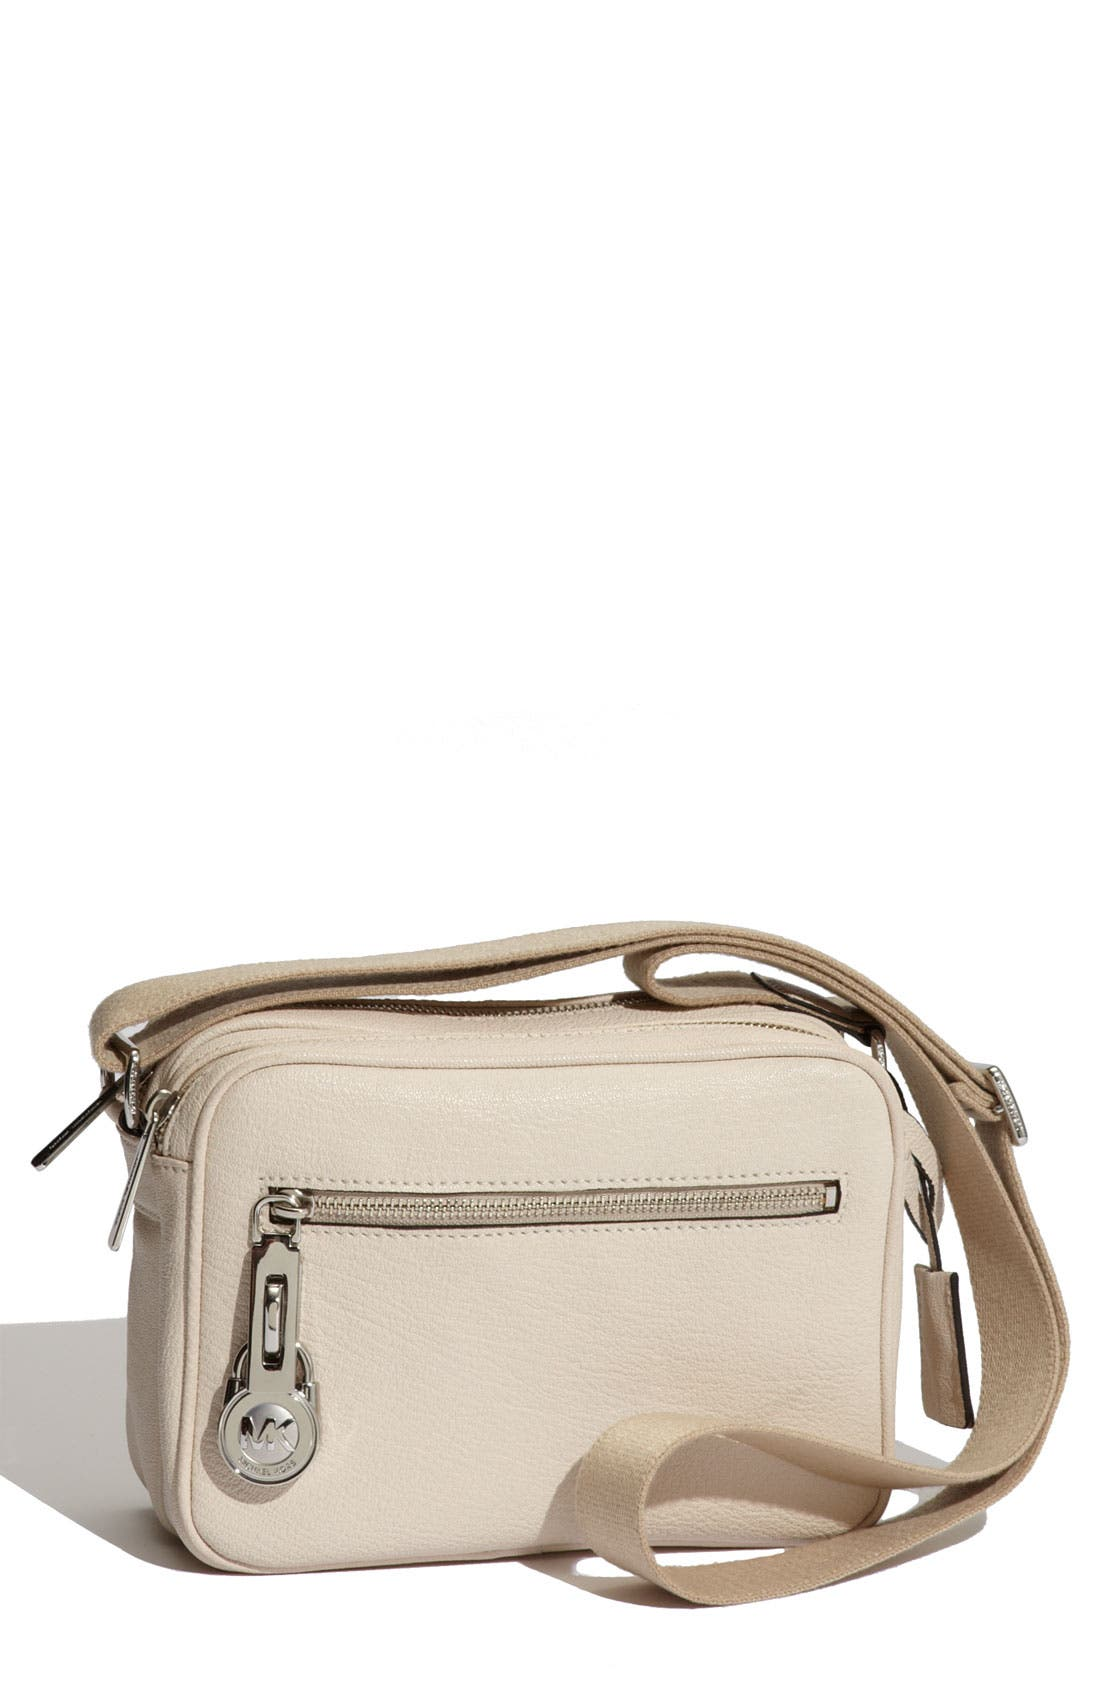 Alternate Image 1 Selected - MICHAEL Michael Kors 'Flight' Crossbody Bag